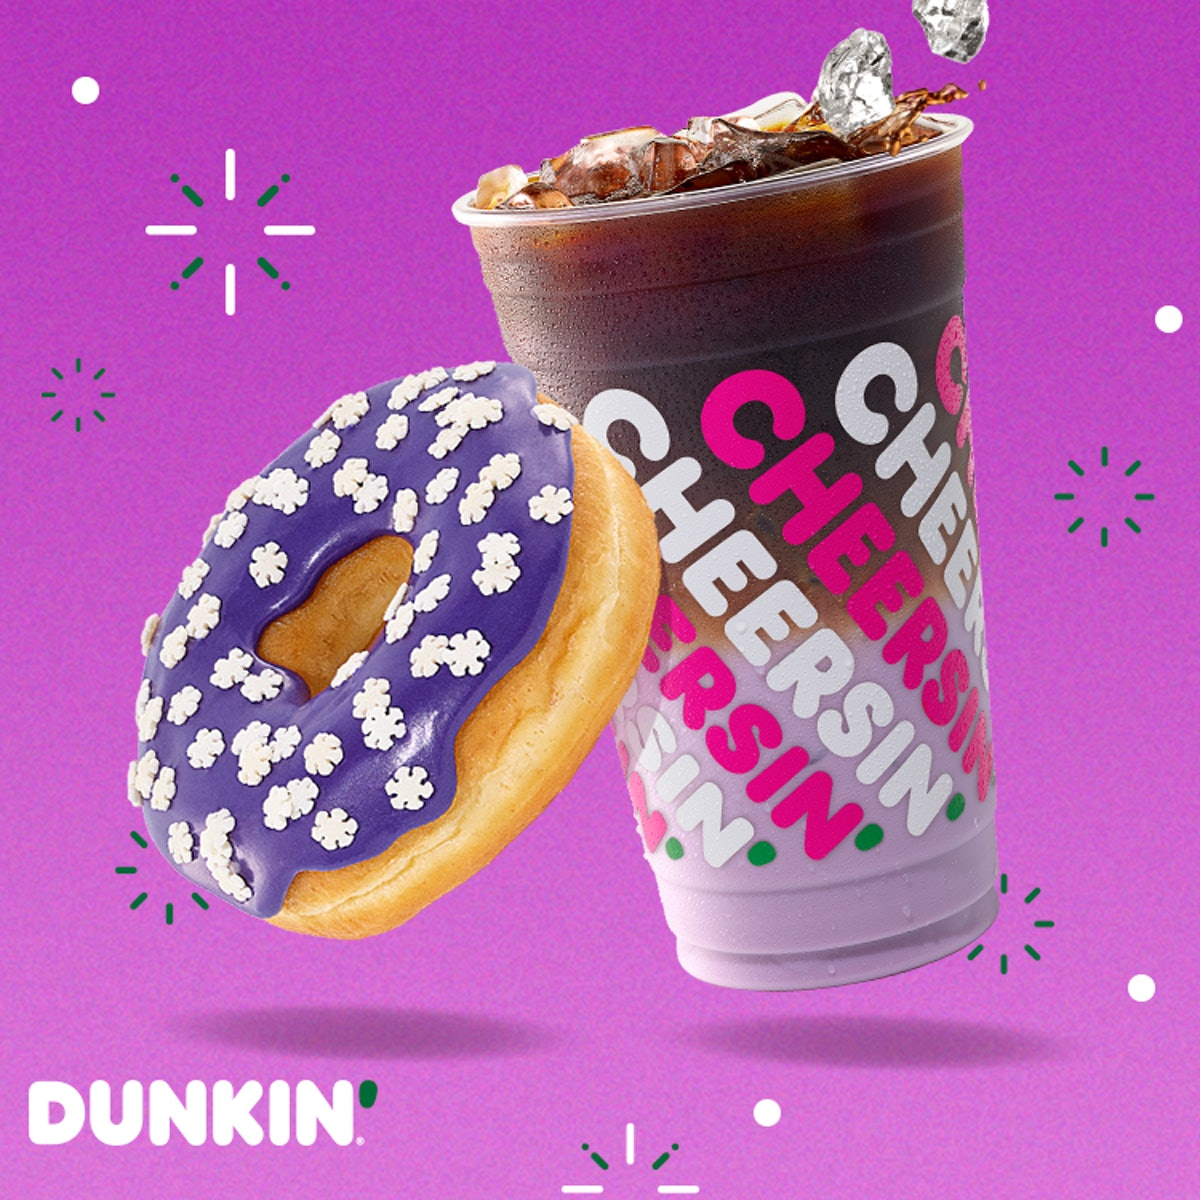 Dunkin's Sugarplum Macchiato is available starting Dec. 2 for a limited time.